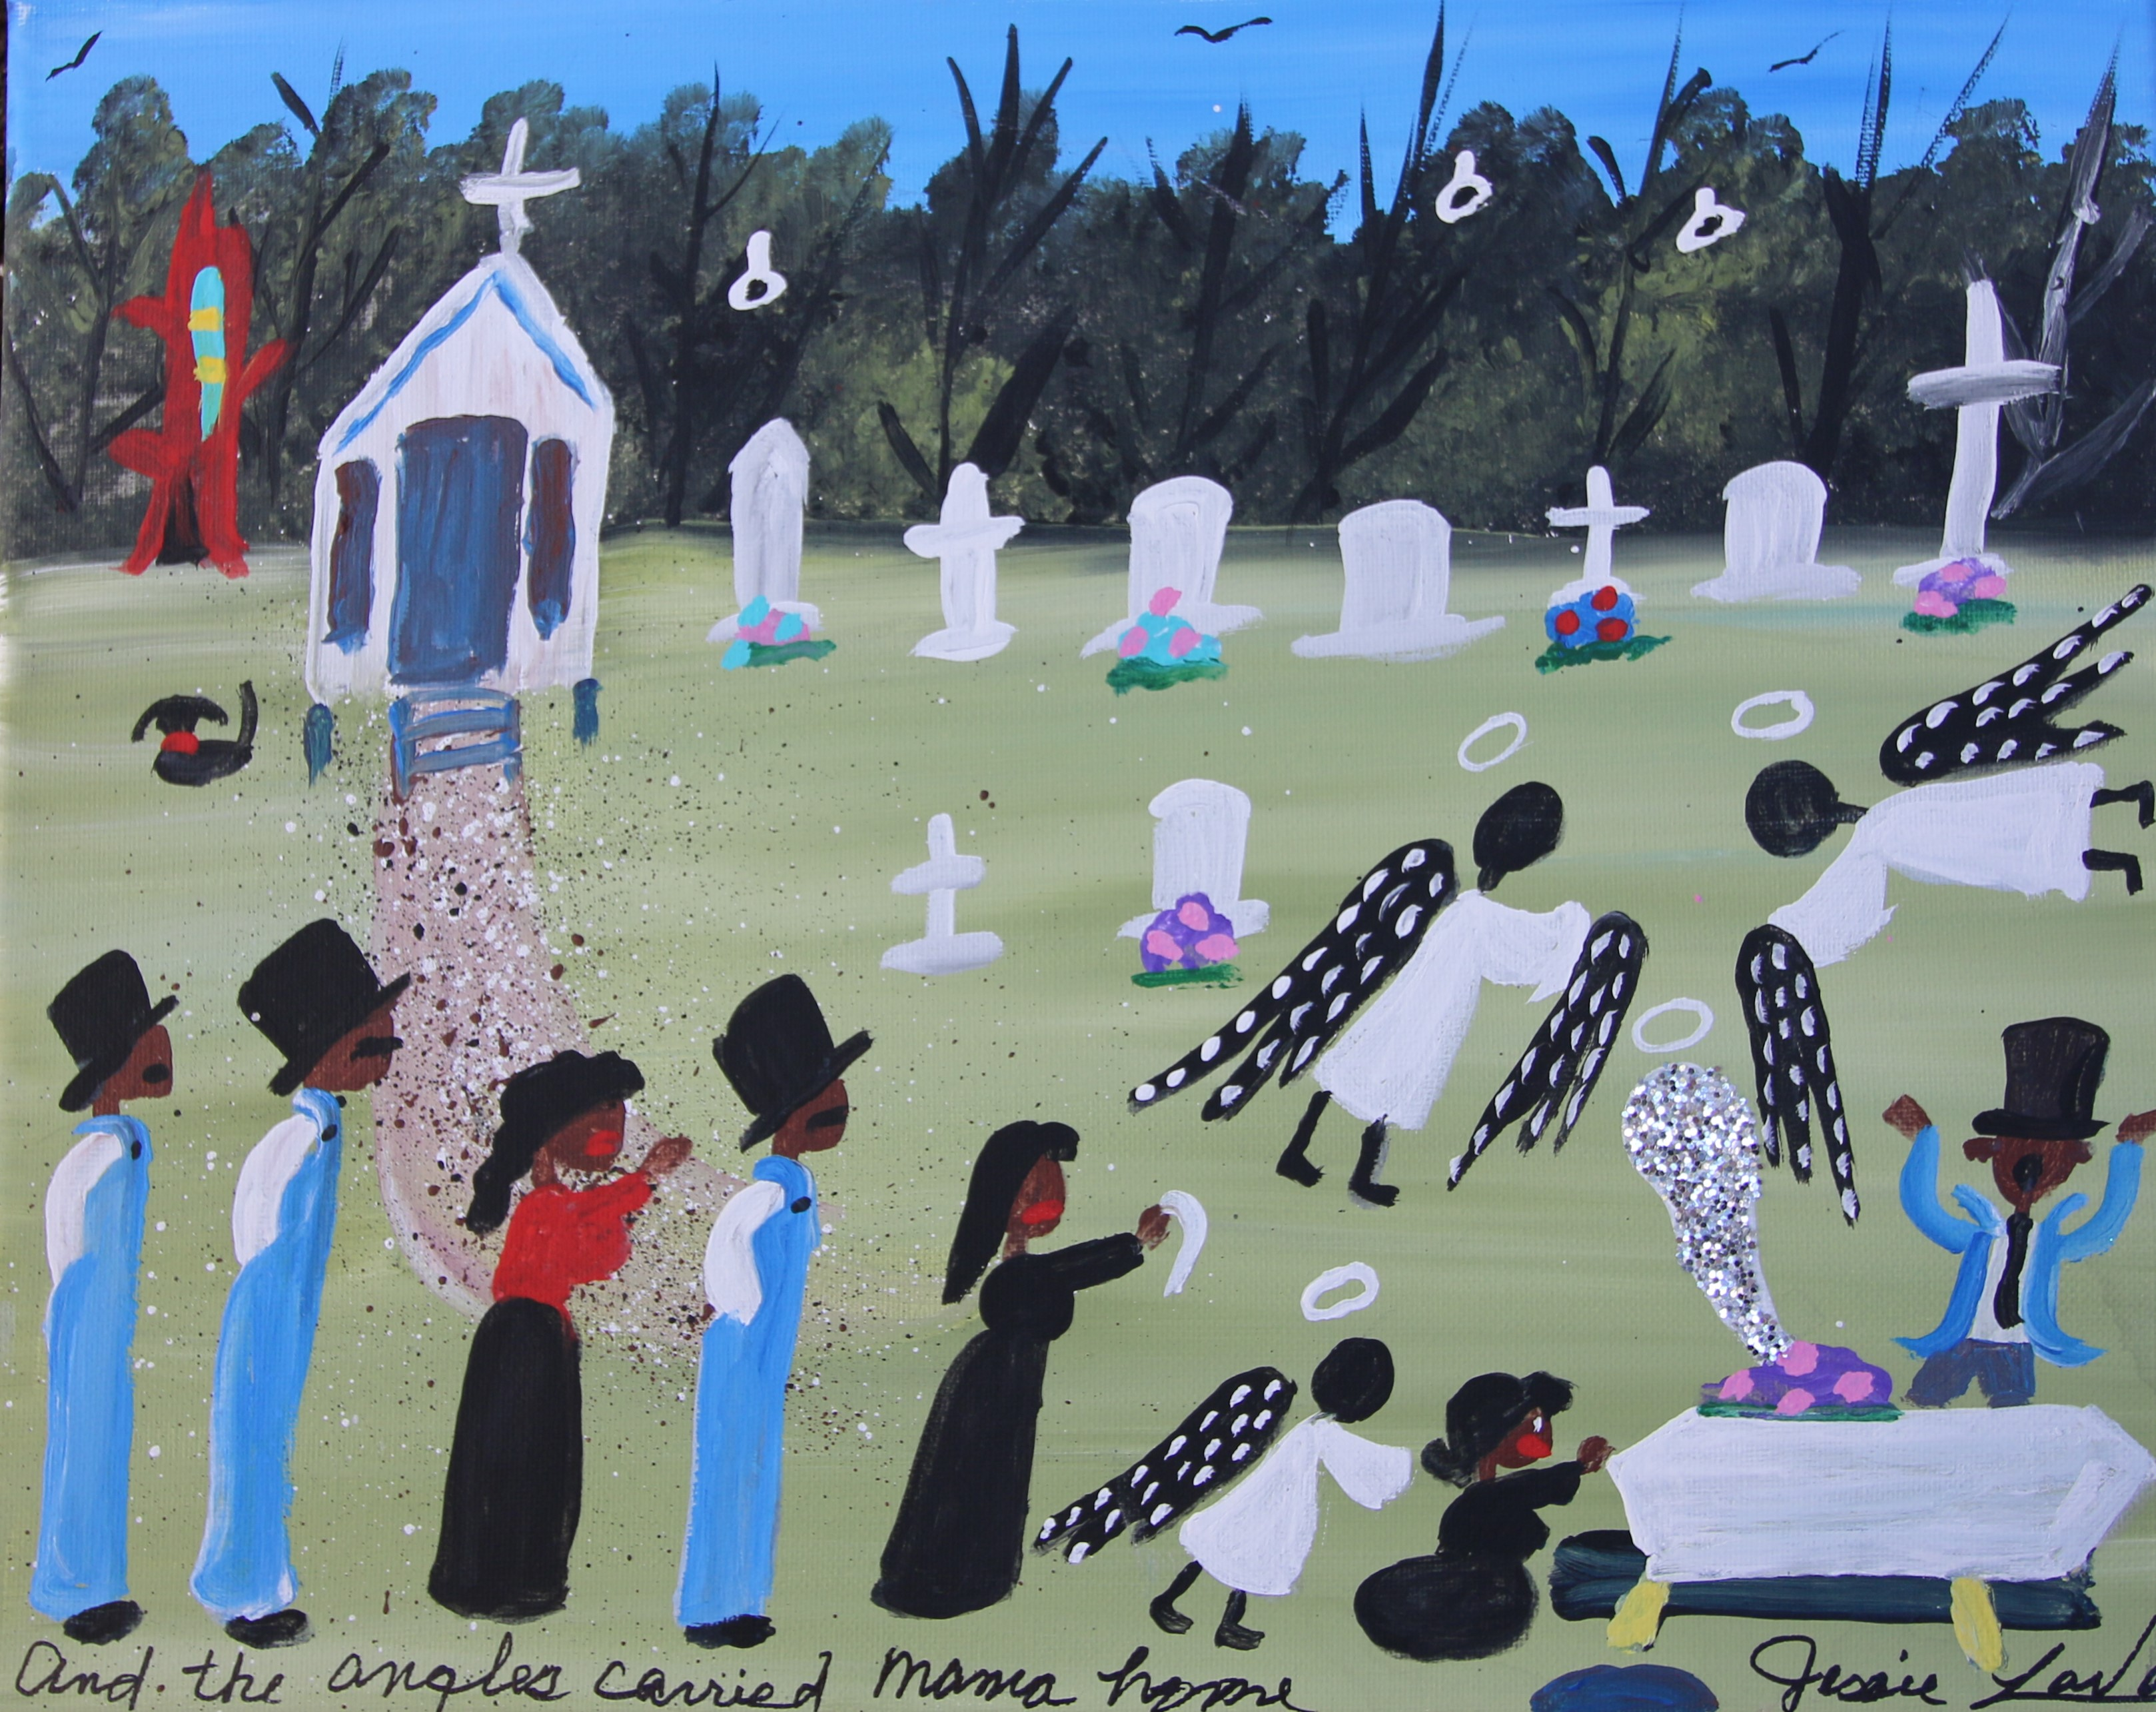 https://alabama-travel.s3.amazonaws.com/partners-uploads/photo/image/601c76331c503b0007d7d040/And the Angels carried mama home.JPG